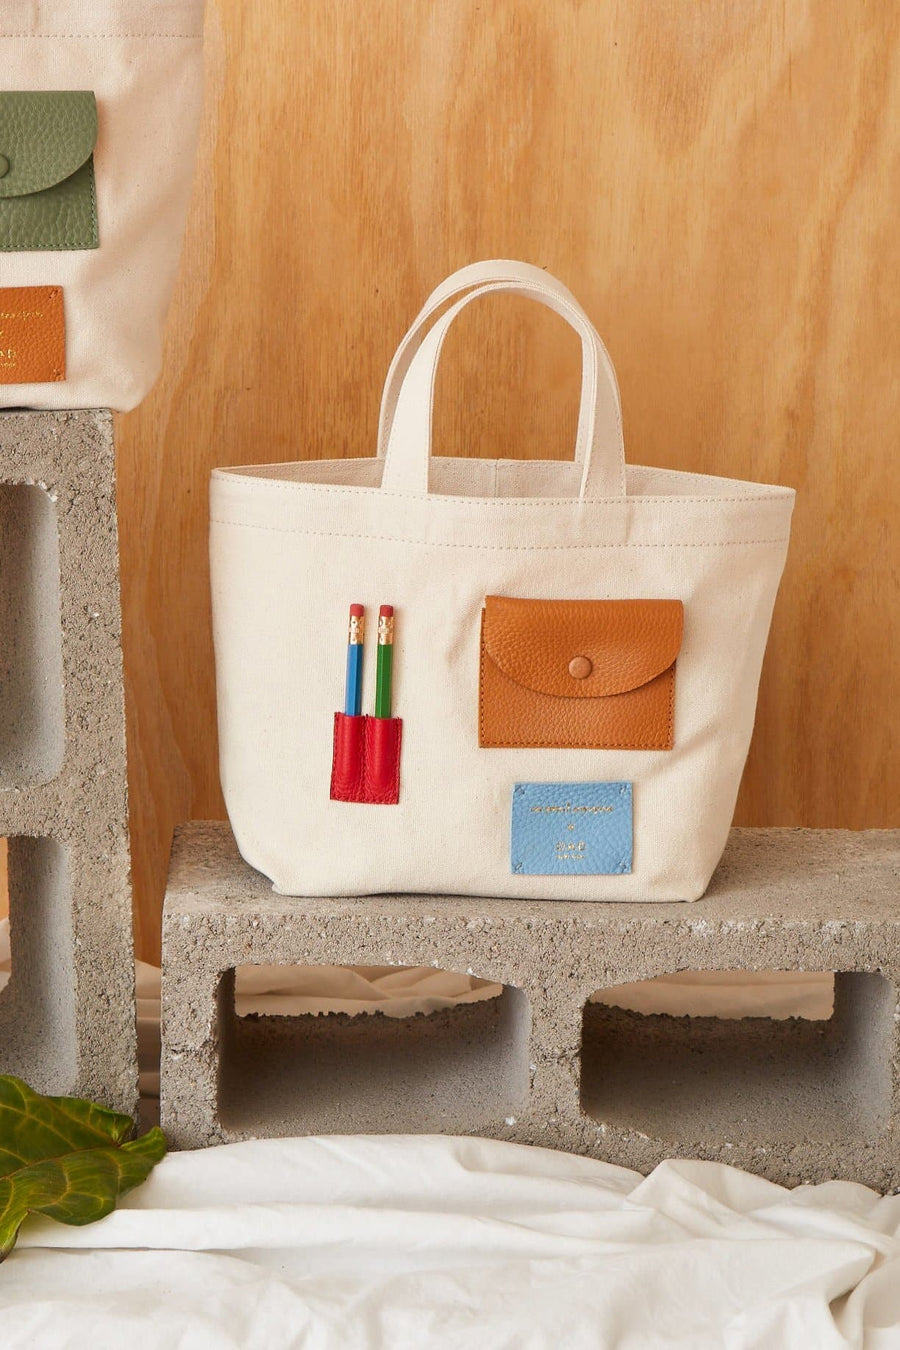 Mini OAD x CW Pencils Collab Tote - Colors II - OAD NEW YORK